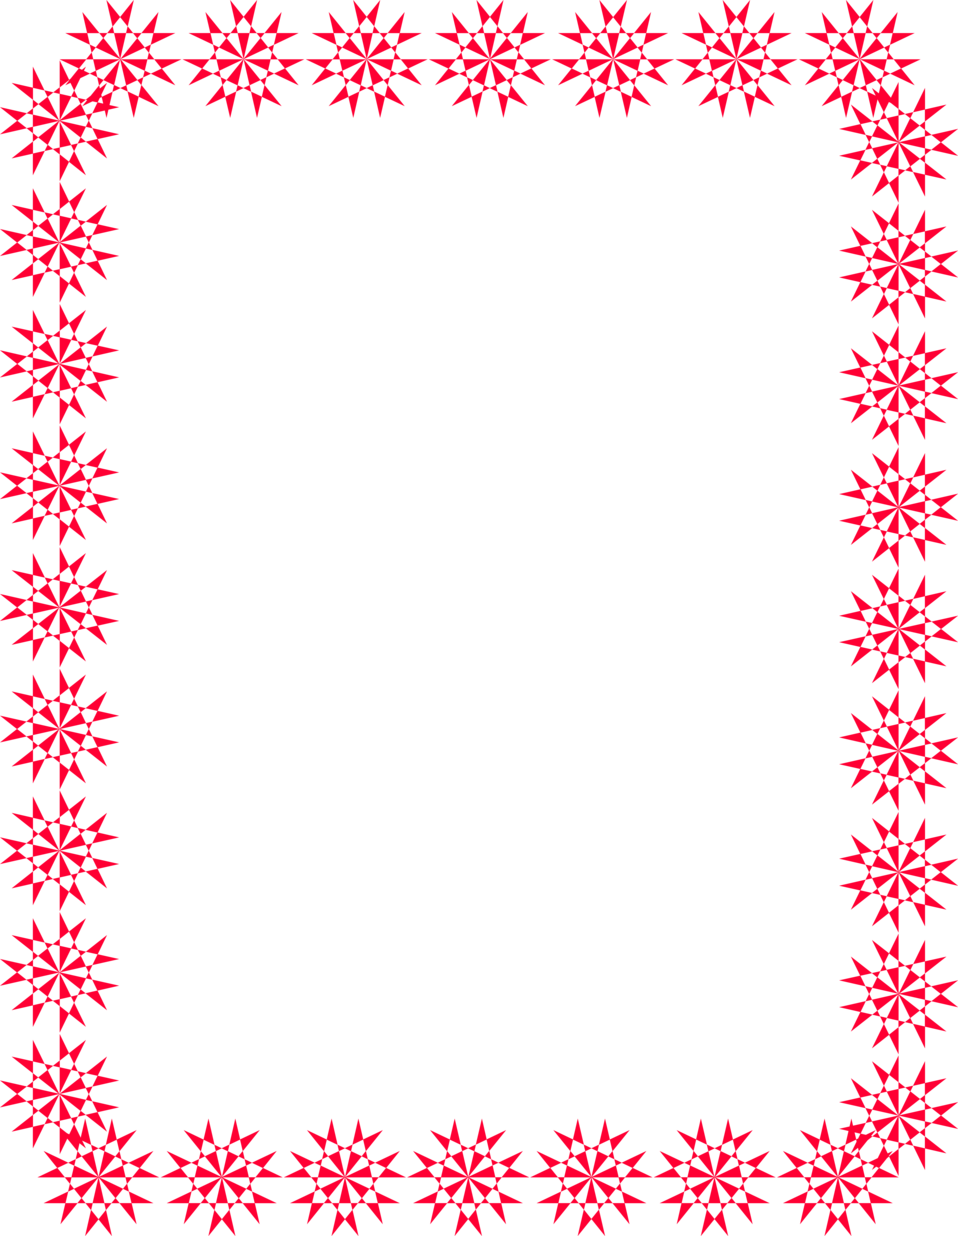 Free christmas border clipart picture library library 28+ Collection of Christmas Clipart Borders Frames | High quality ... picture library library